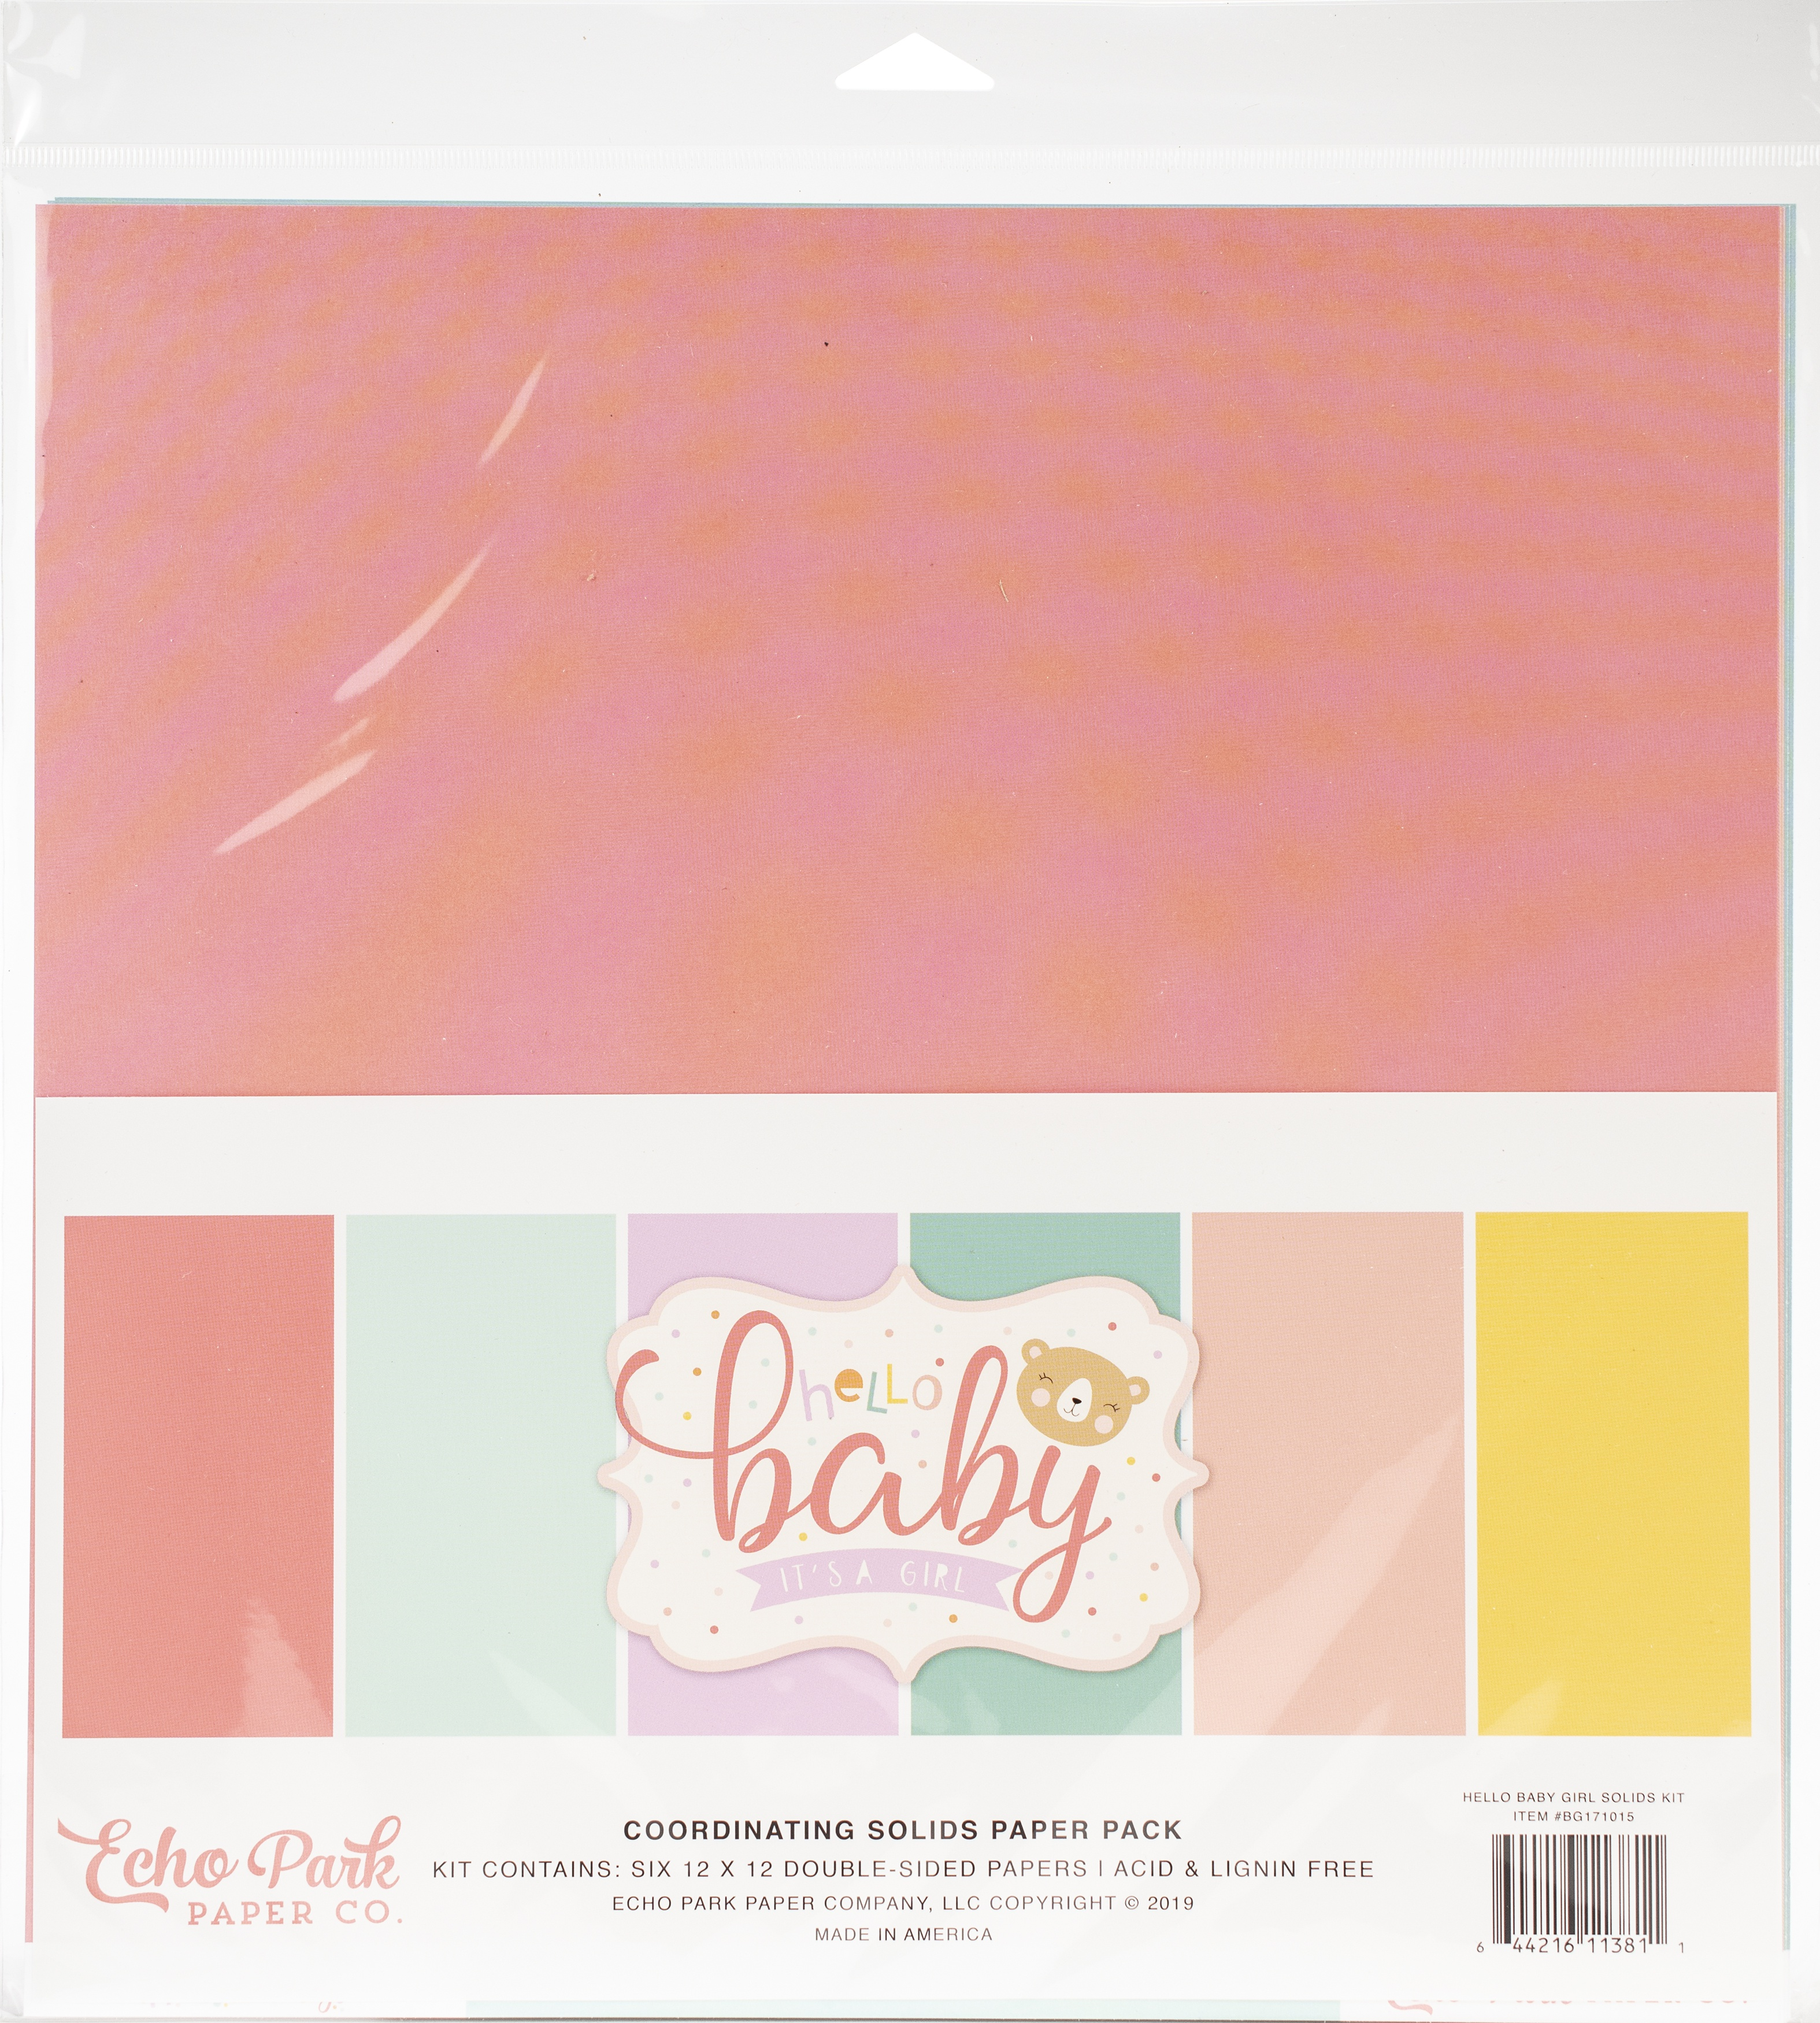 Hello Baby Girl Solids + - Echo Park Double-Sided Solid Cardstock 12X12 6/Pkg 6 Colors